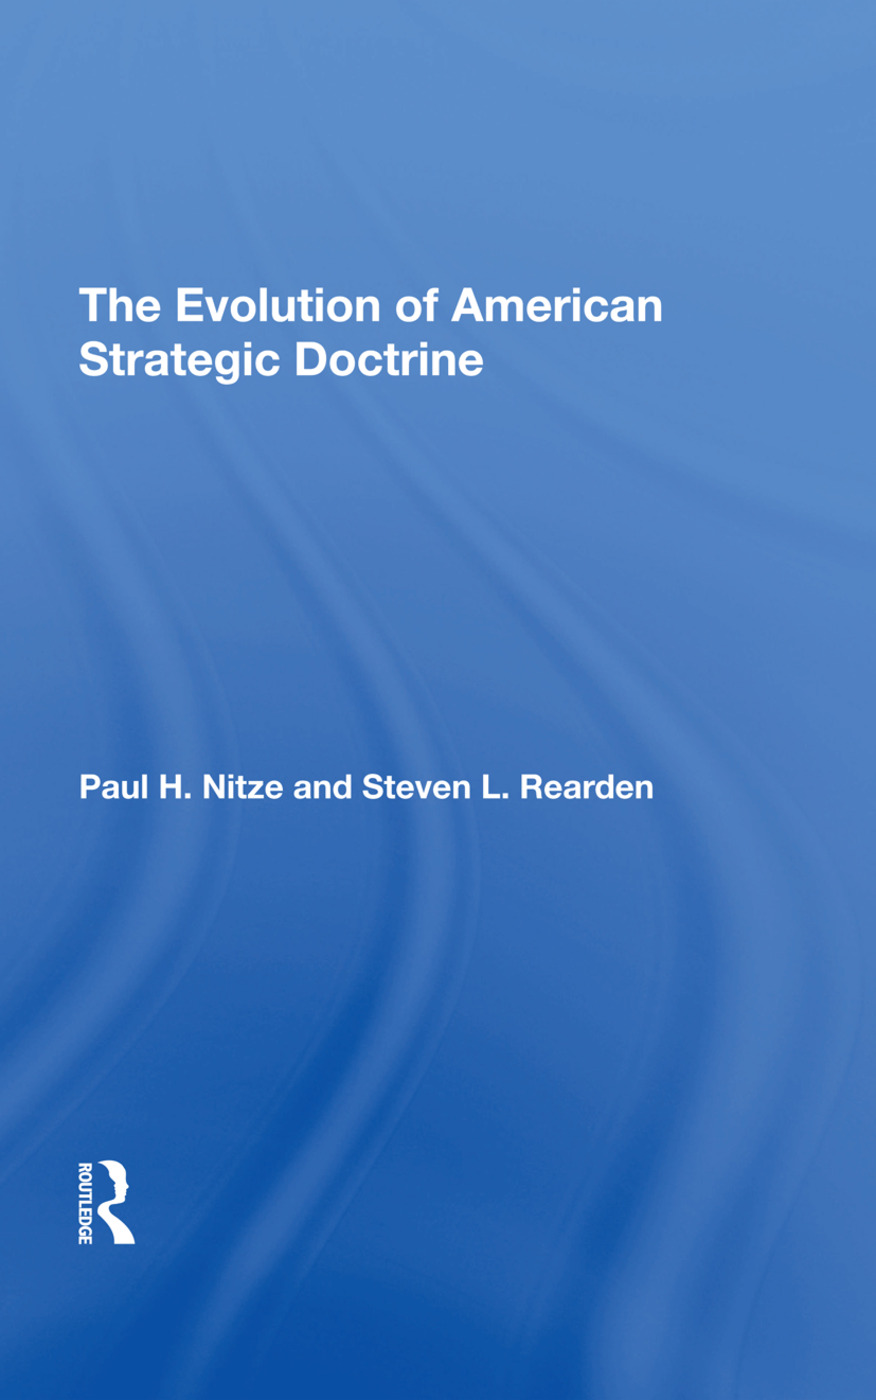 The Evolution Of American Strategic Doctrine: Paul H. Nitze And The Soviet Challenge book cover